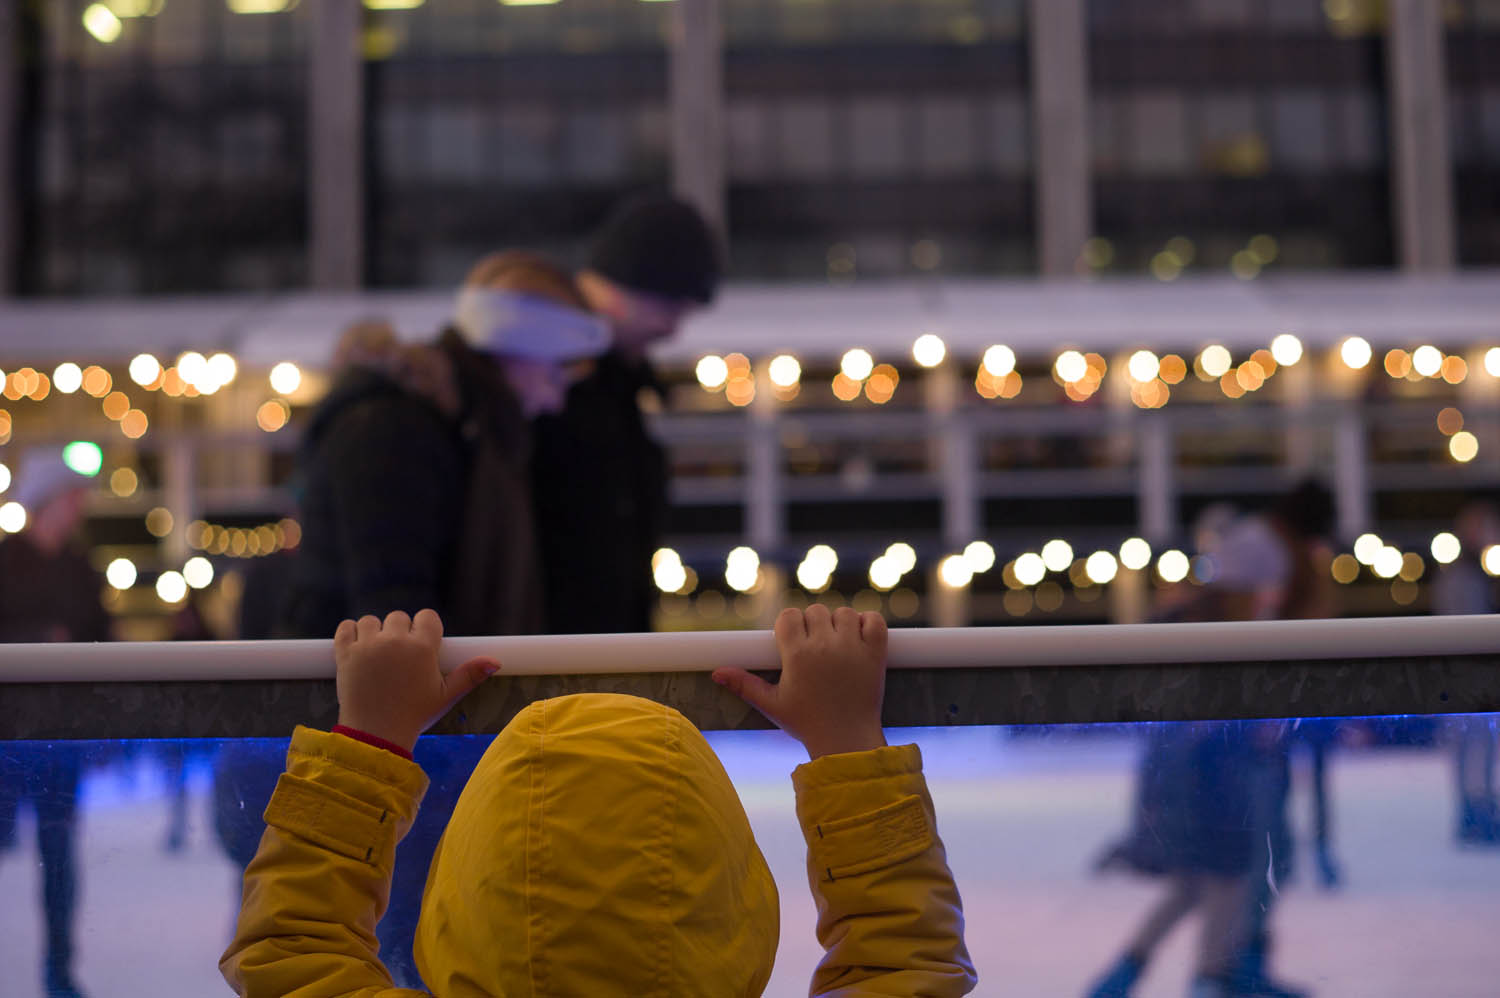 A child in a yellow jacket peers over the rail of an outside skating rink in London